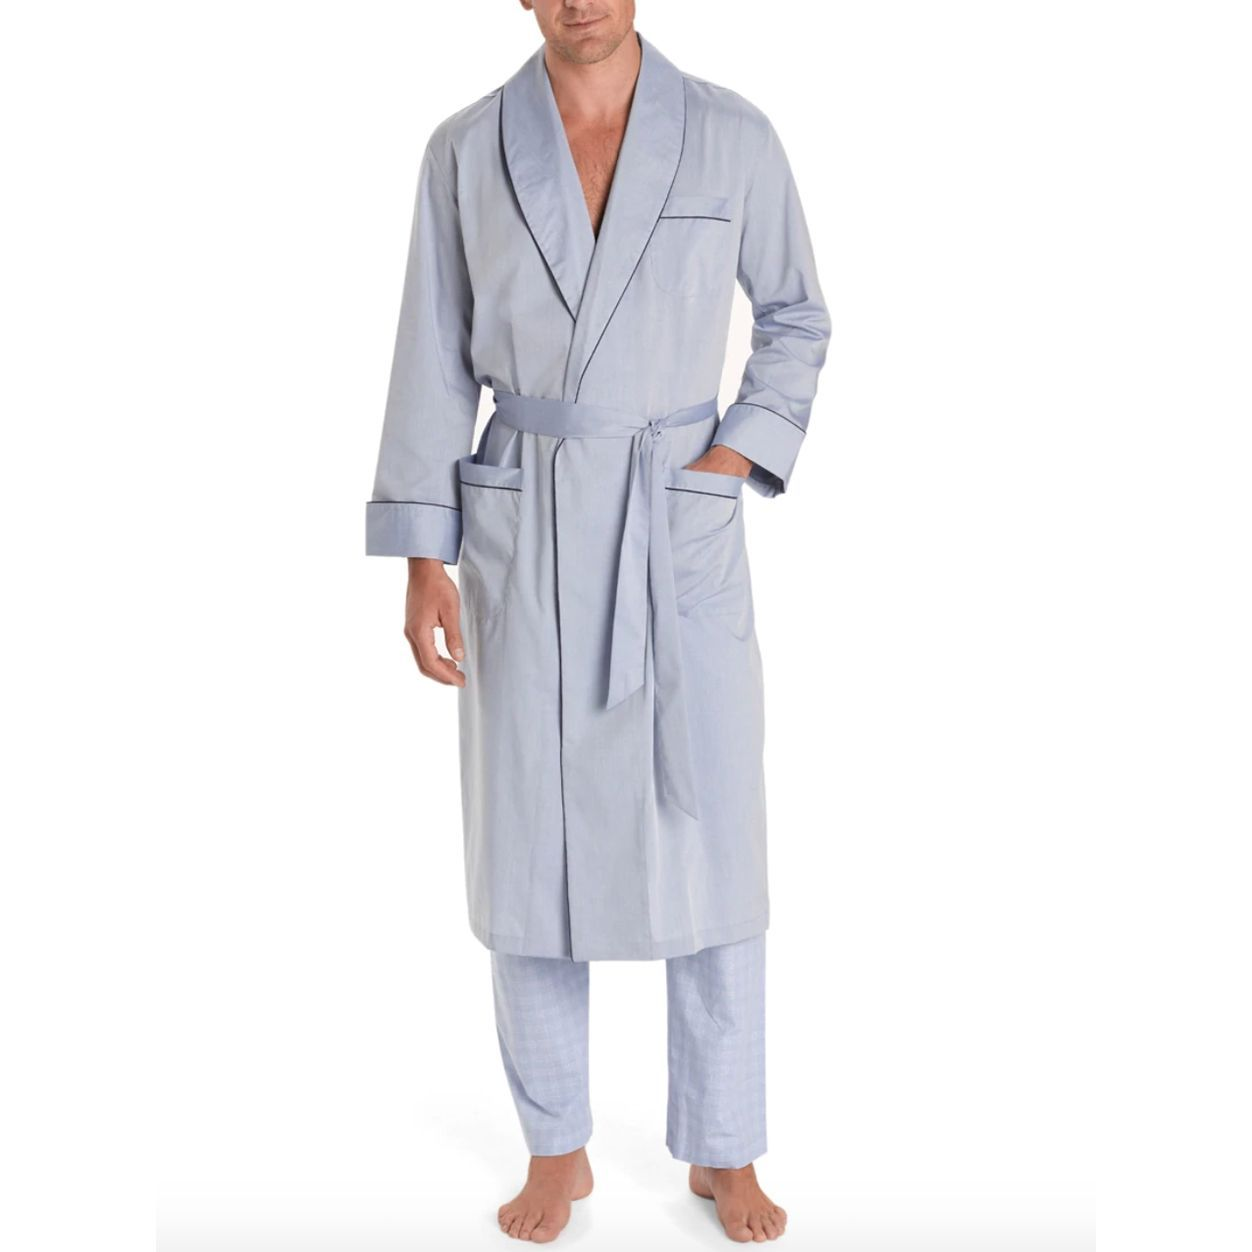 18 Best Bathrobes For Men 2021 Unique Luxury And Silk Robes For Men